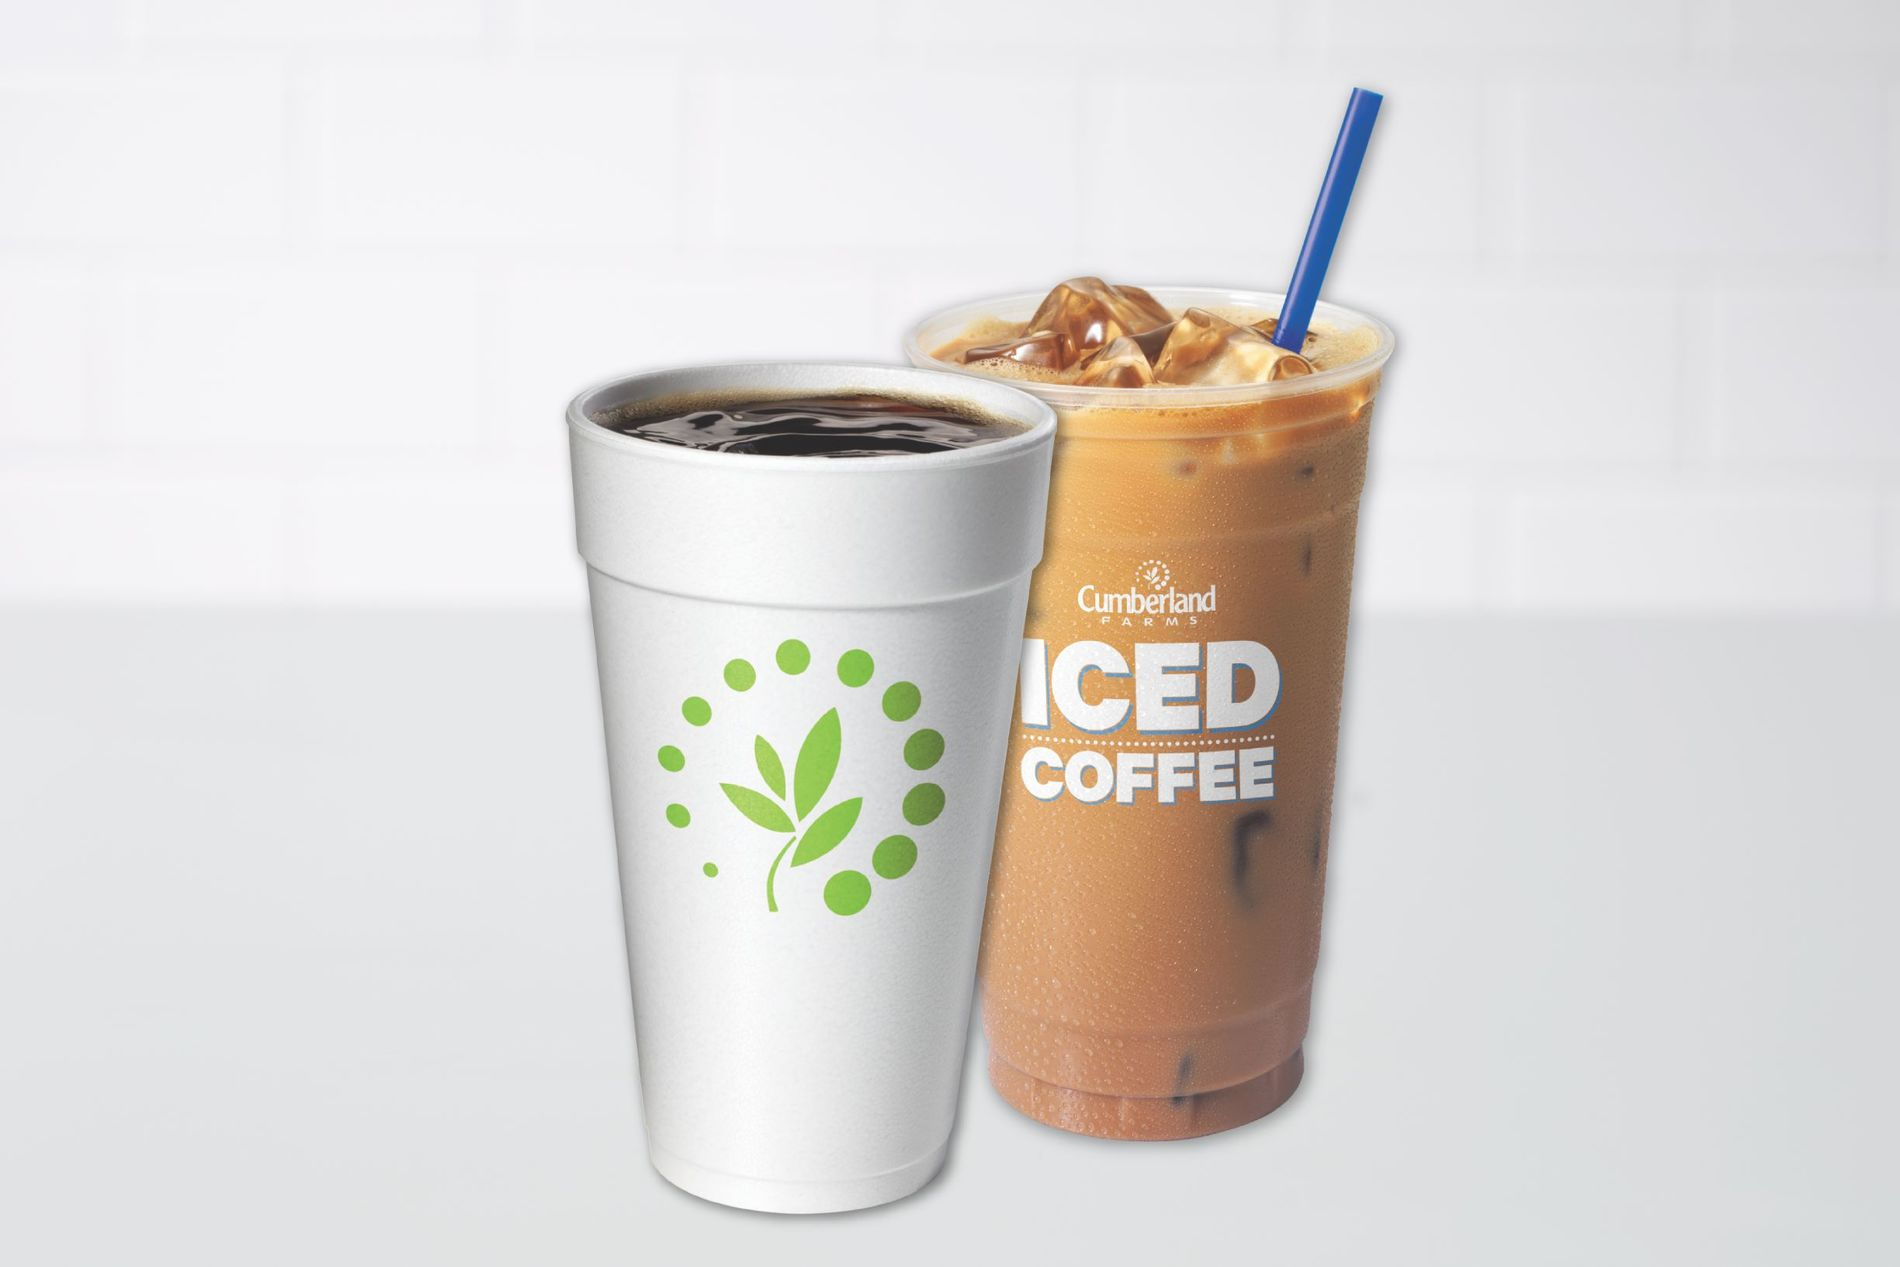 Cumberland Farms farmhouse coffee and iced coffee in two separate cups